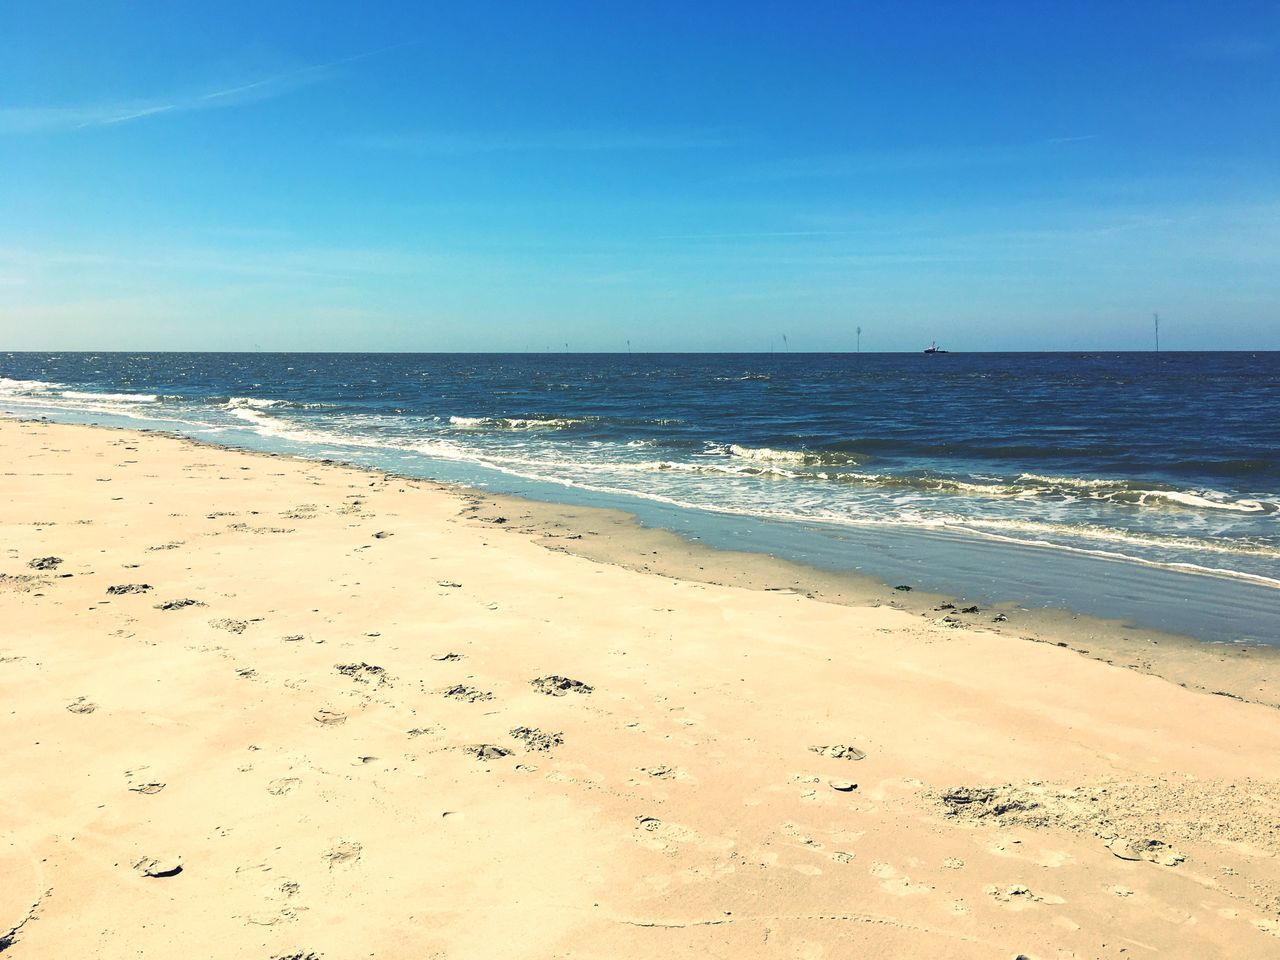 Beach Sea Sand Horizon Over Water Scenics Beauty In Nature Nature Tranquil Scene Water Shore Tranquility Outdoors Sky No People Travel Destinations Day Blue Sunlight Wave Clear Sky